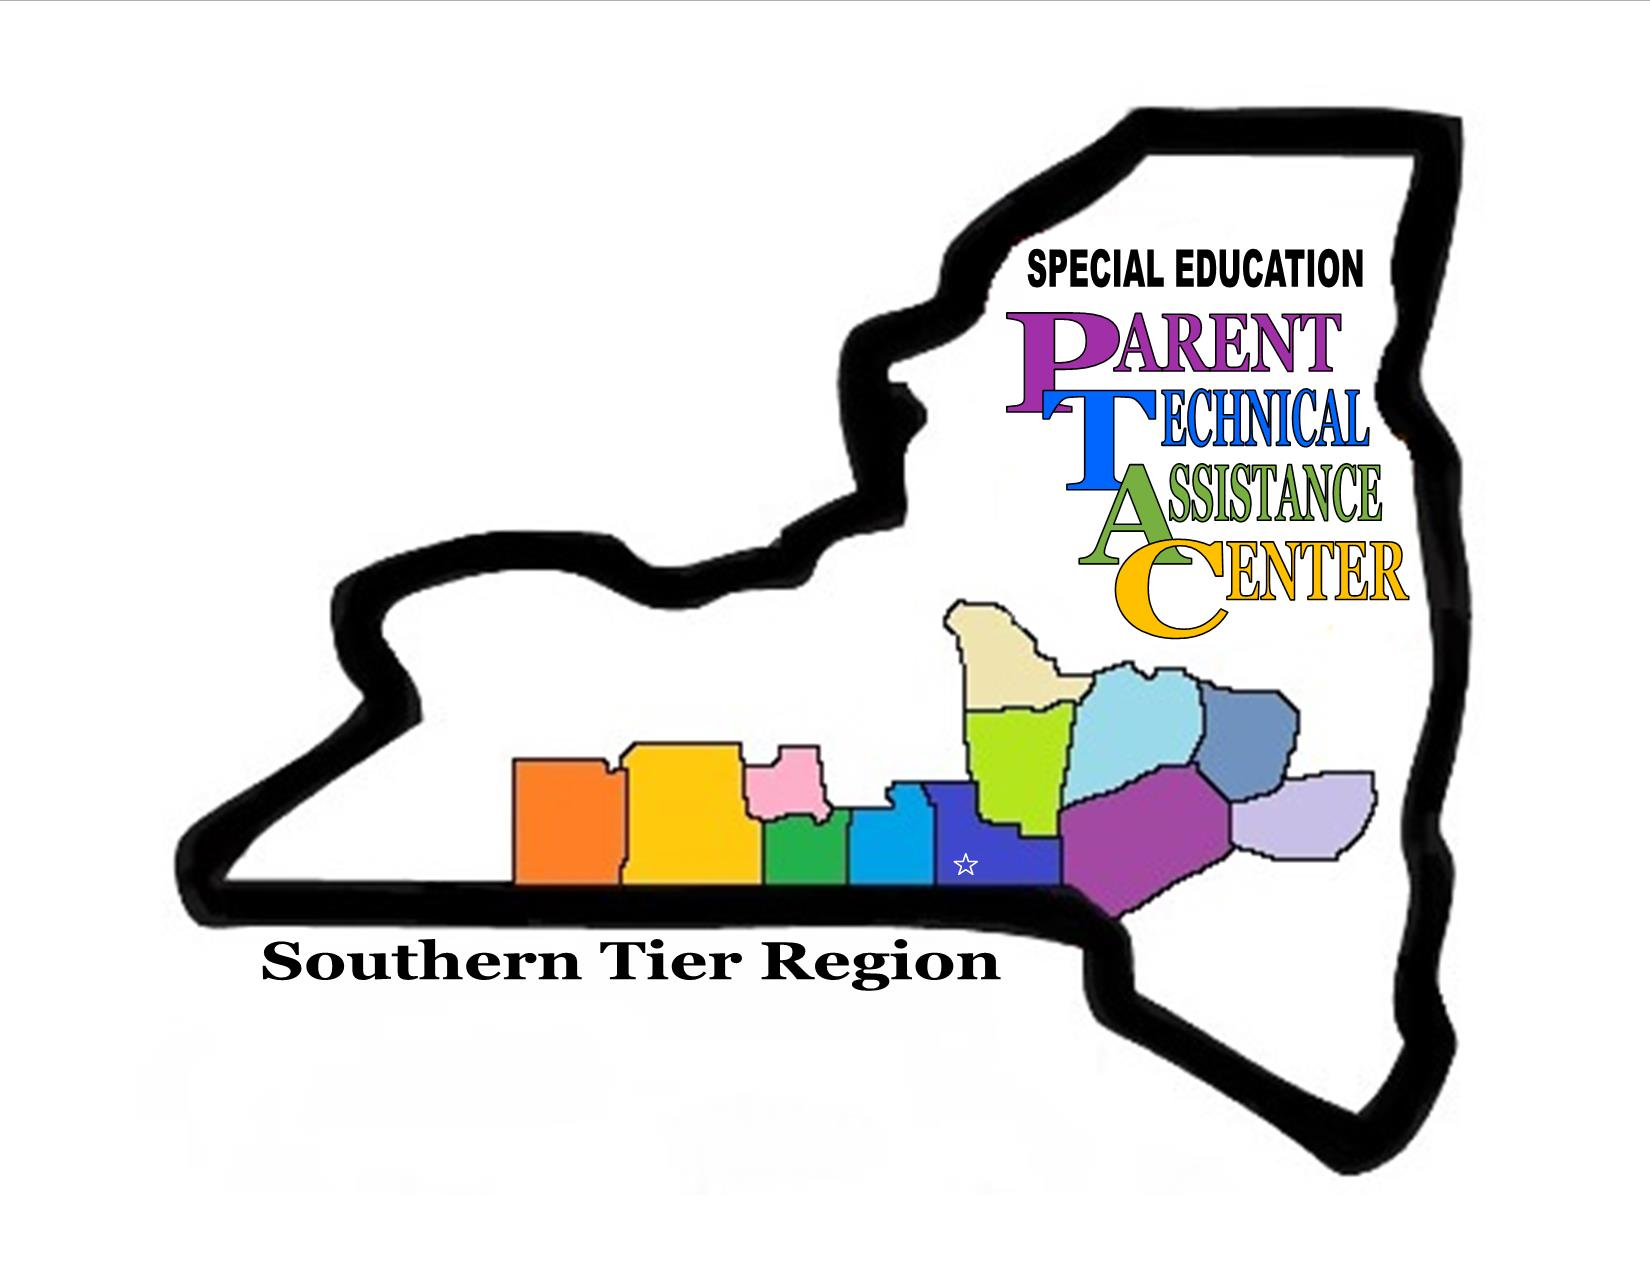 Image of NY state with counties color for service area for PTAC.